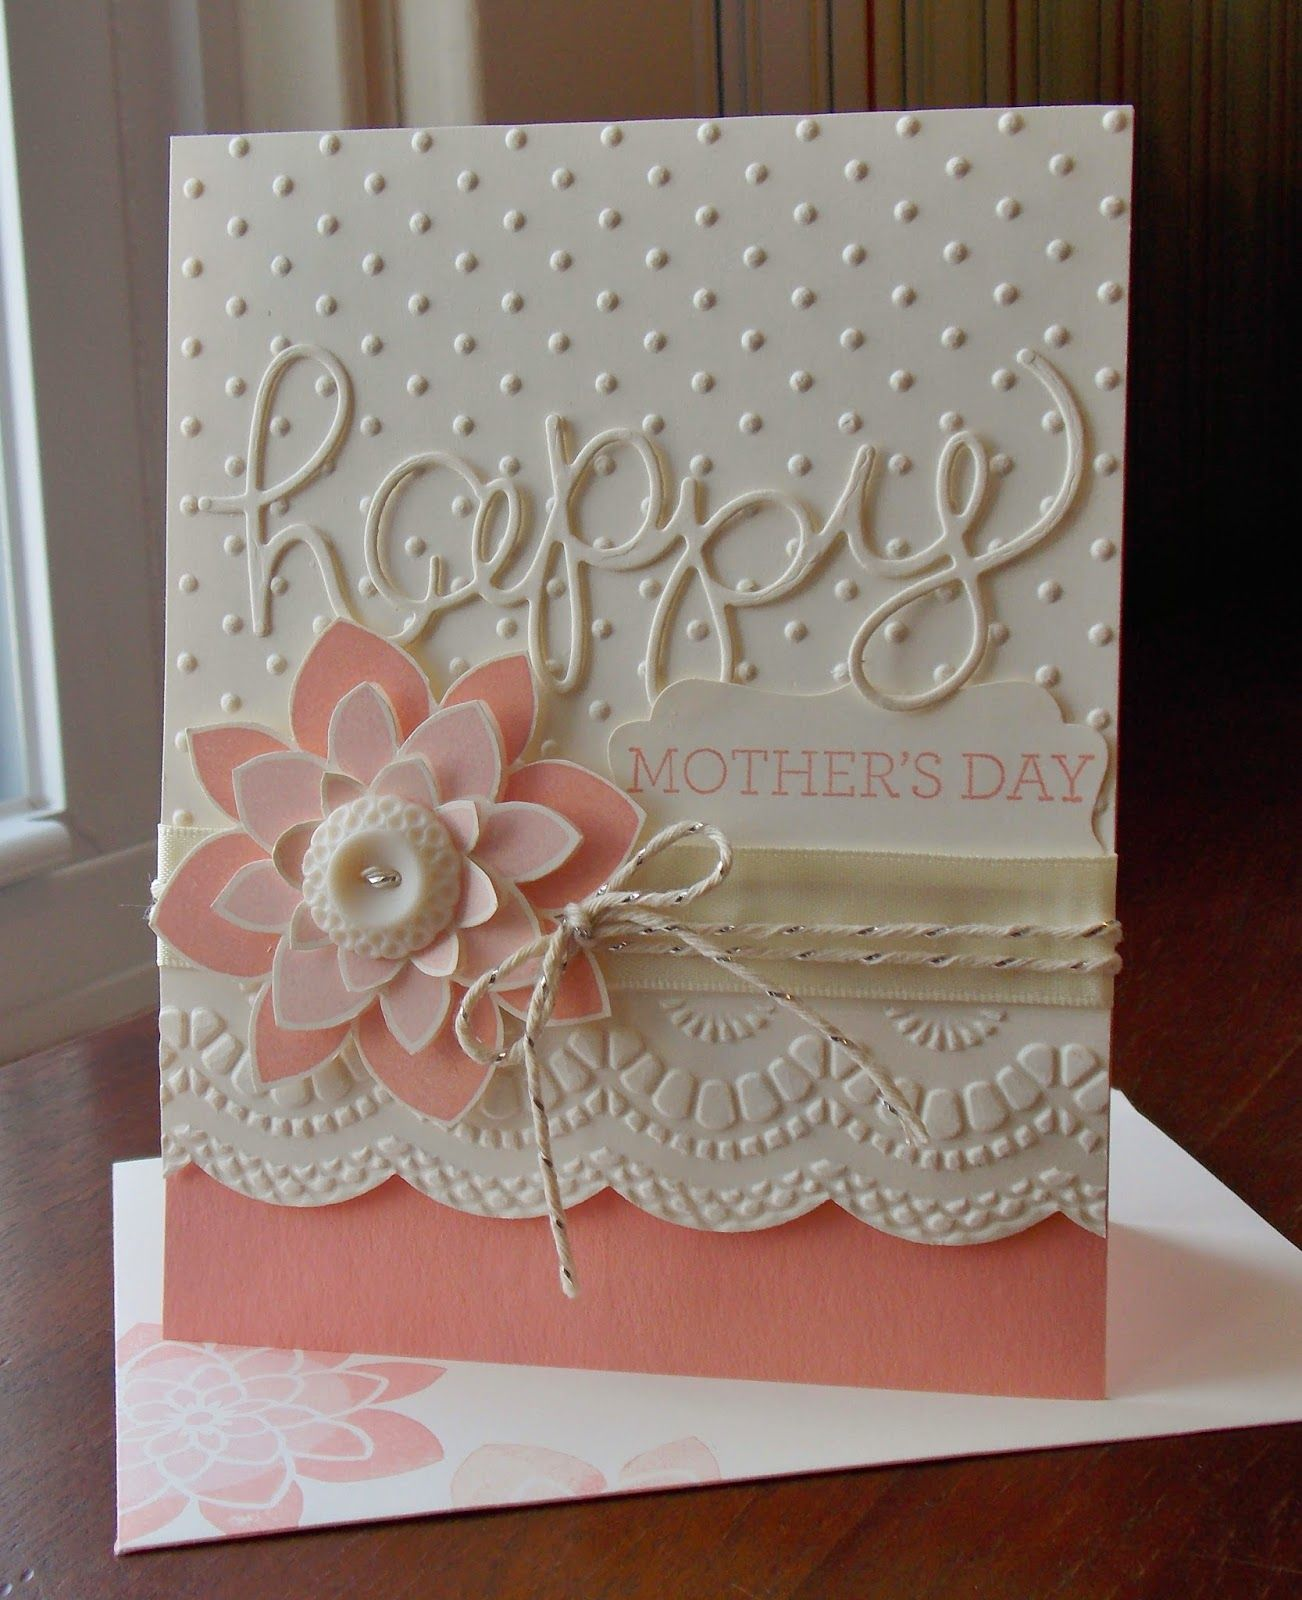 Stampin' Up! Crazy About You Mother's Day Card Laura's